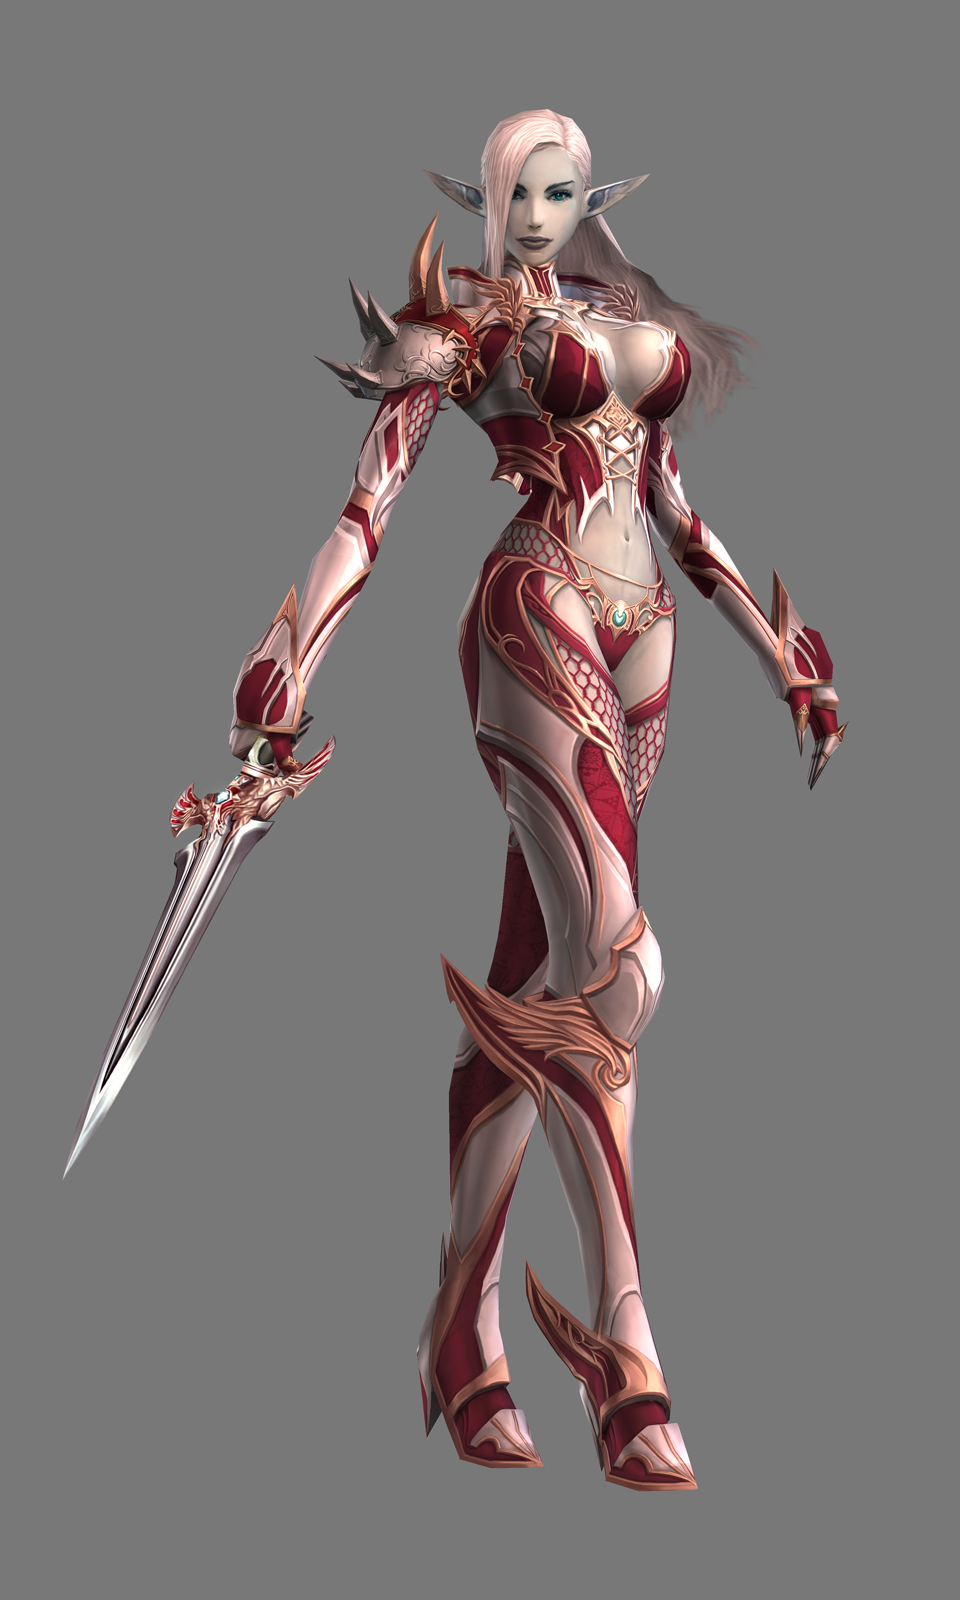 Nude lineage 2 characters in armors adult thumbs